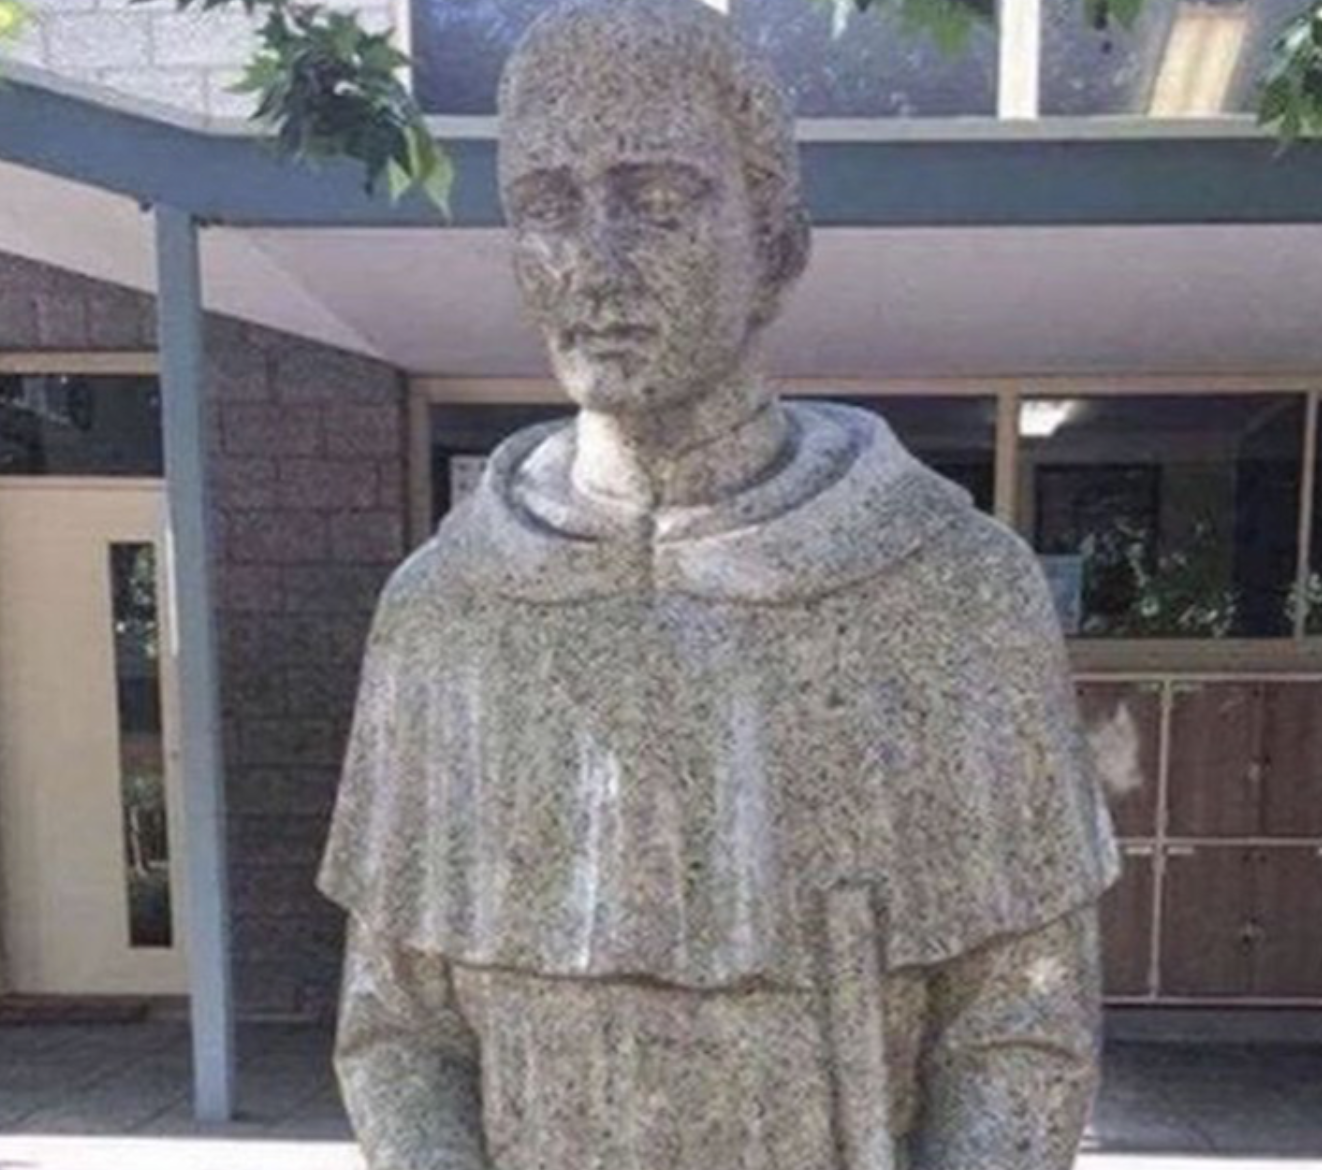 Adelaide Catholic school covers up 'potentially suggestive' statue with tarp